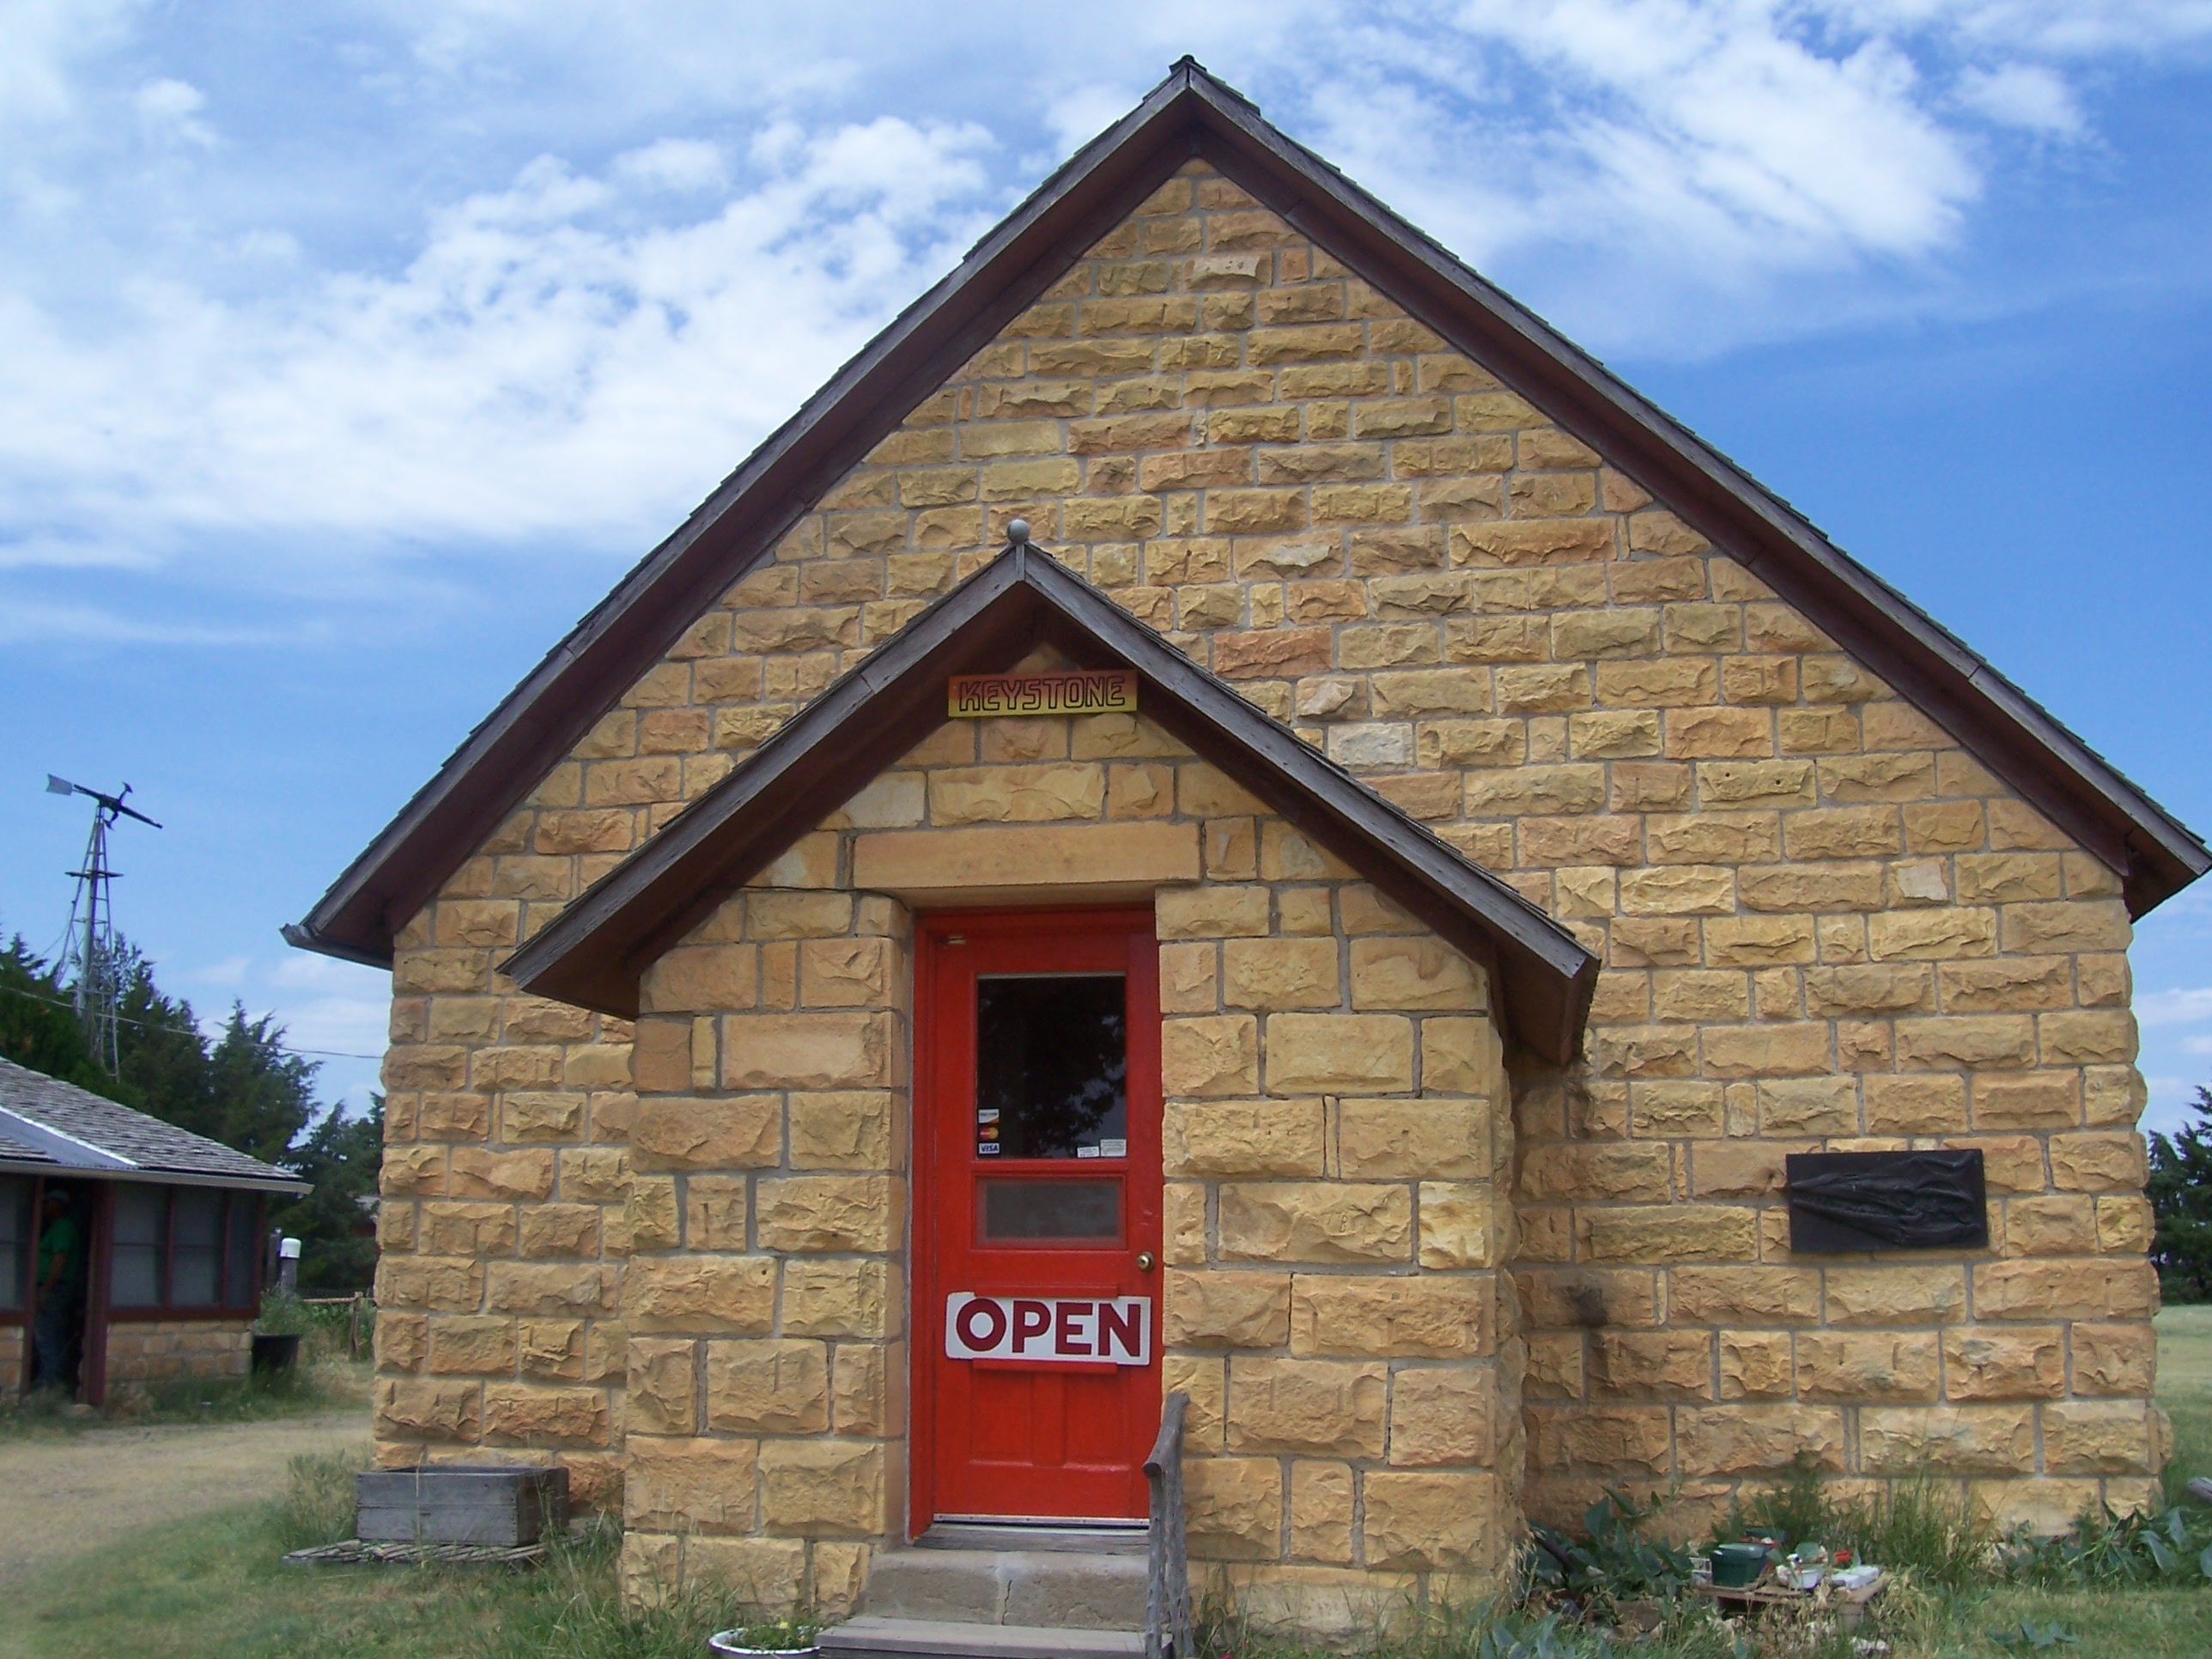 Kansas gove county grinnell - Key Stone Gallery